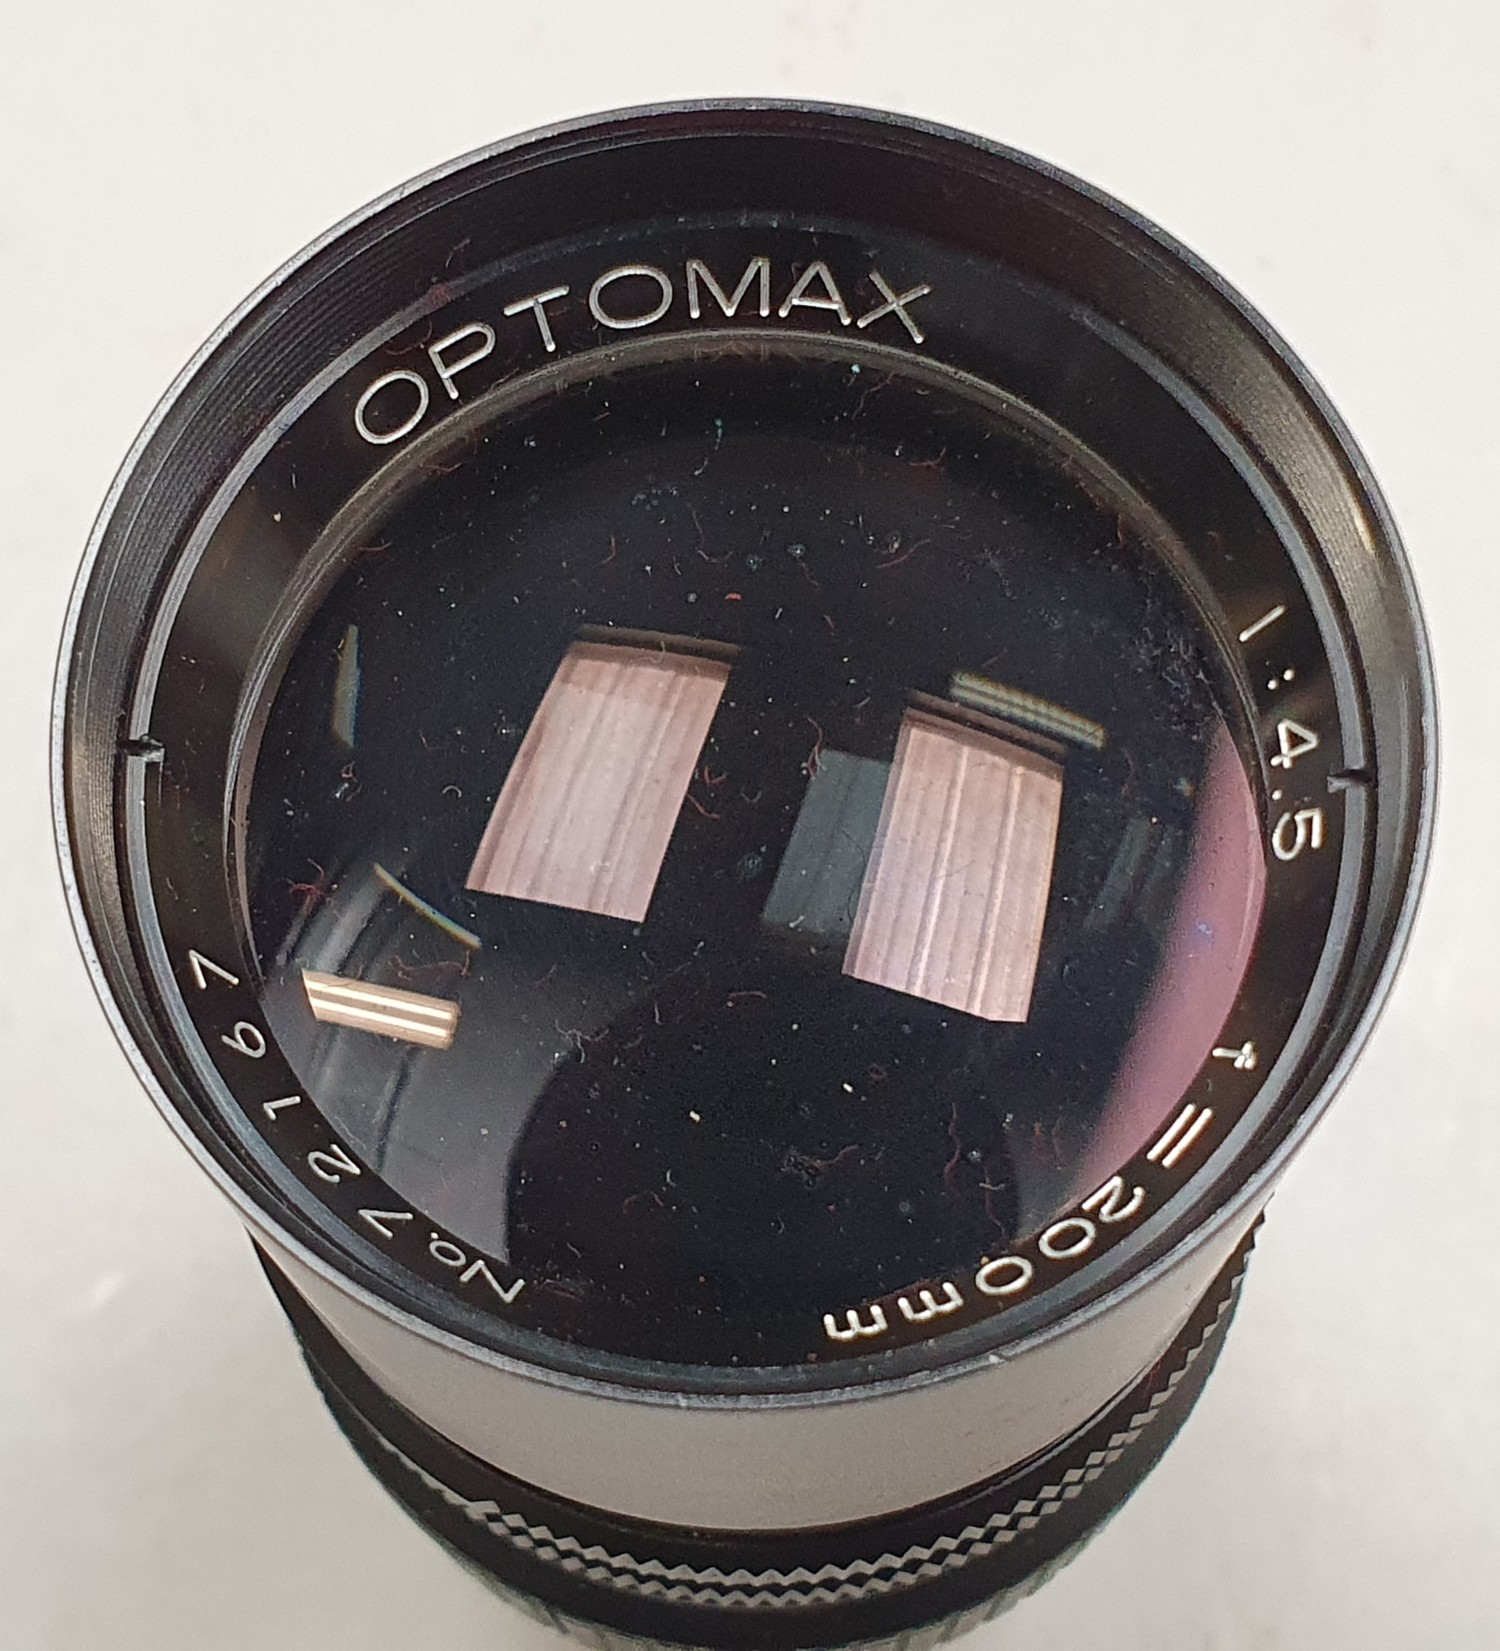 A collection of camera lenses to include Optomax, Nikon etc. - Image 7 of 9